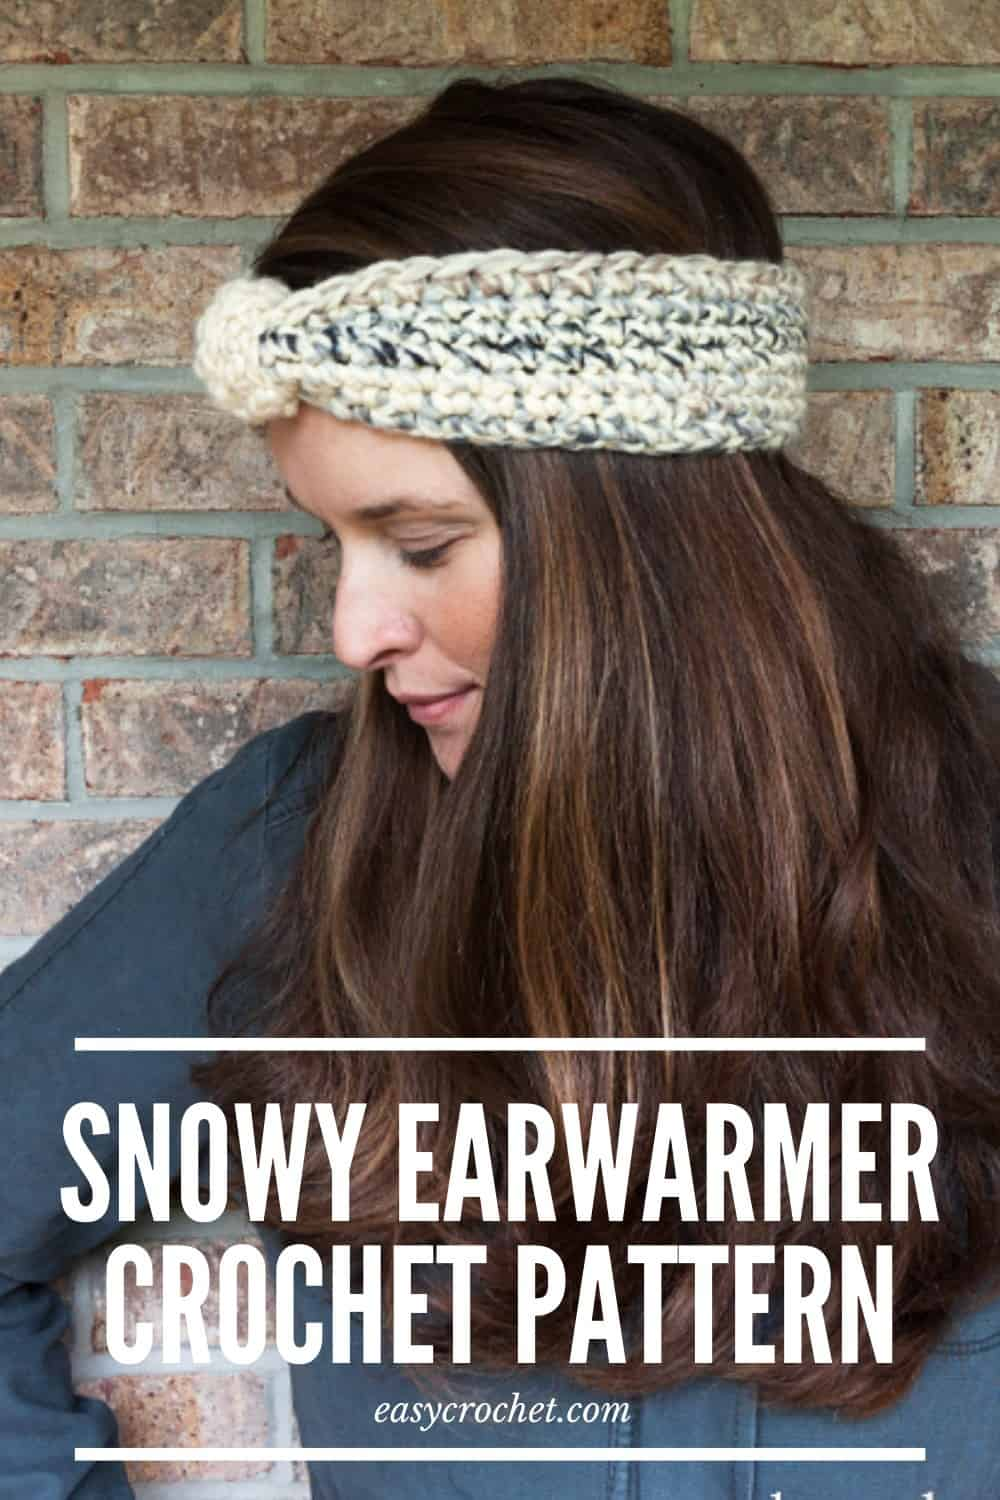 Free Crochet Ear Warmer Pattern - The Snowy Ear Warmer via @easycrochetcom